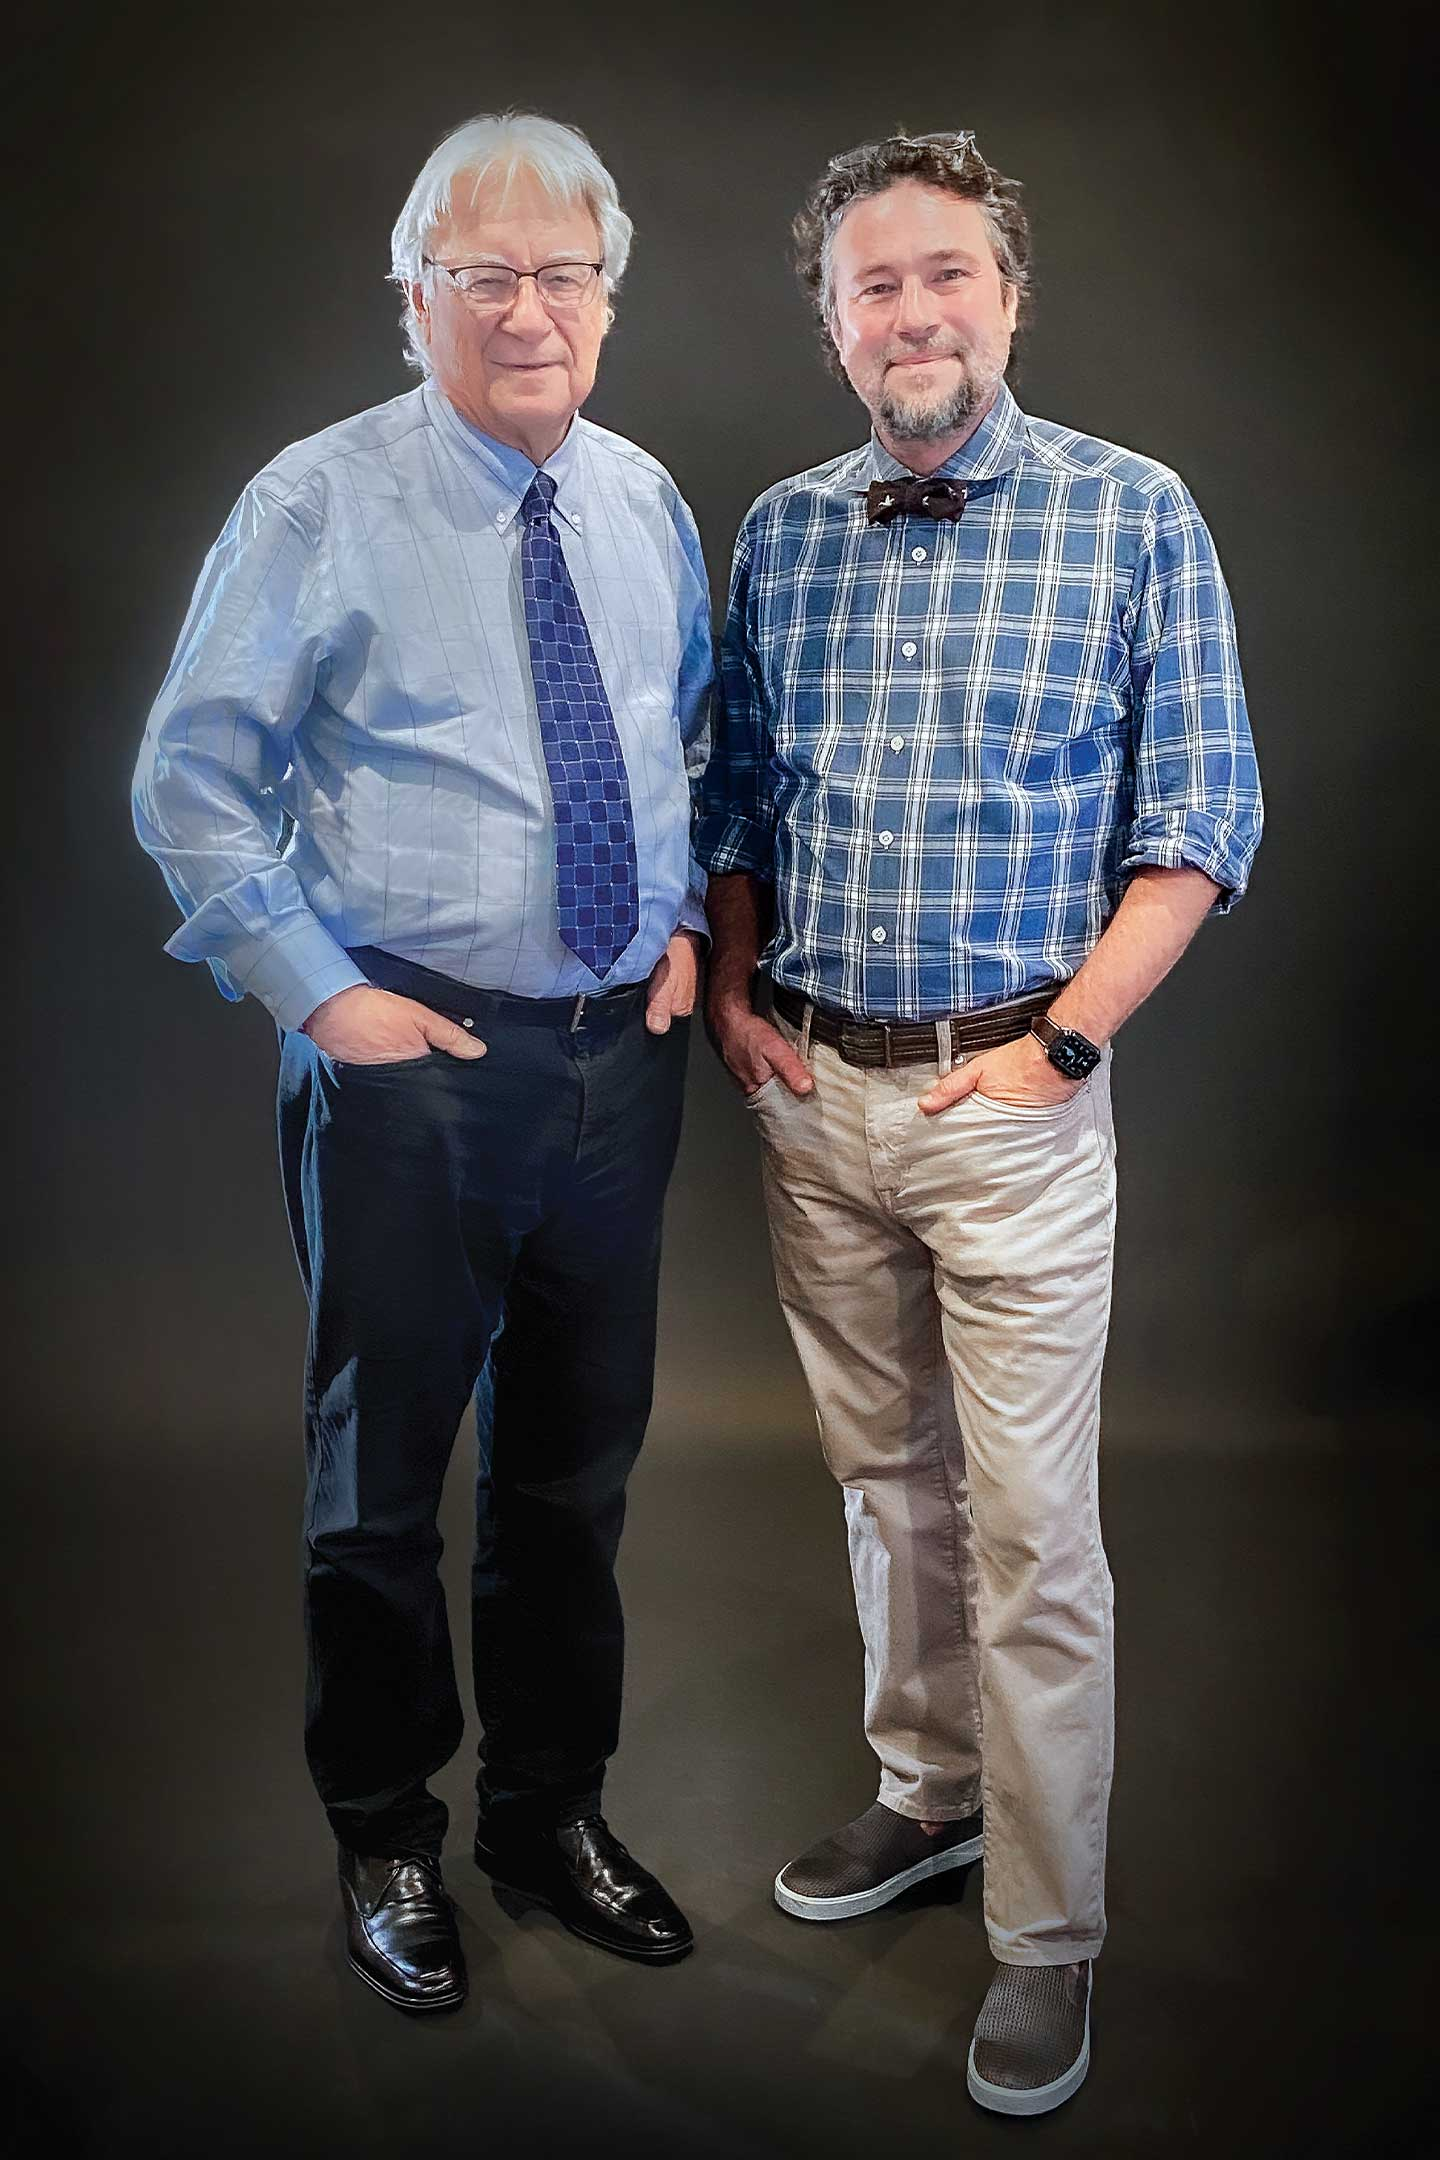 Dr. James Busch and his father Dr. Joseph Busch